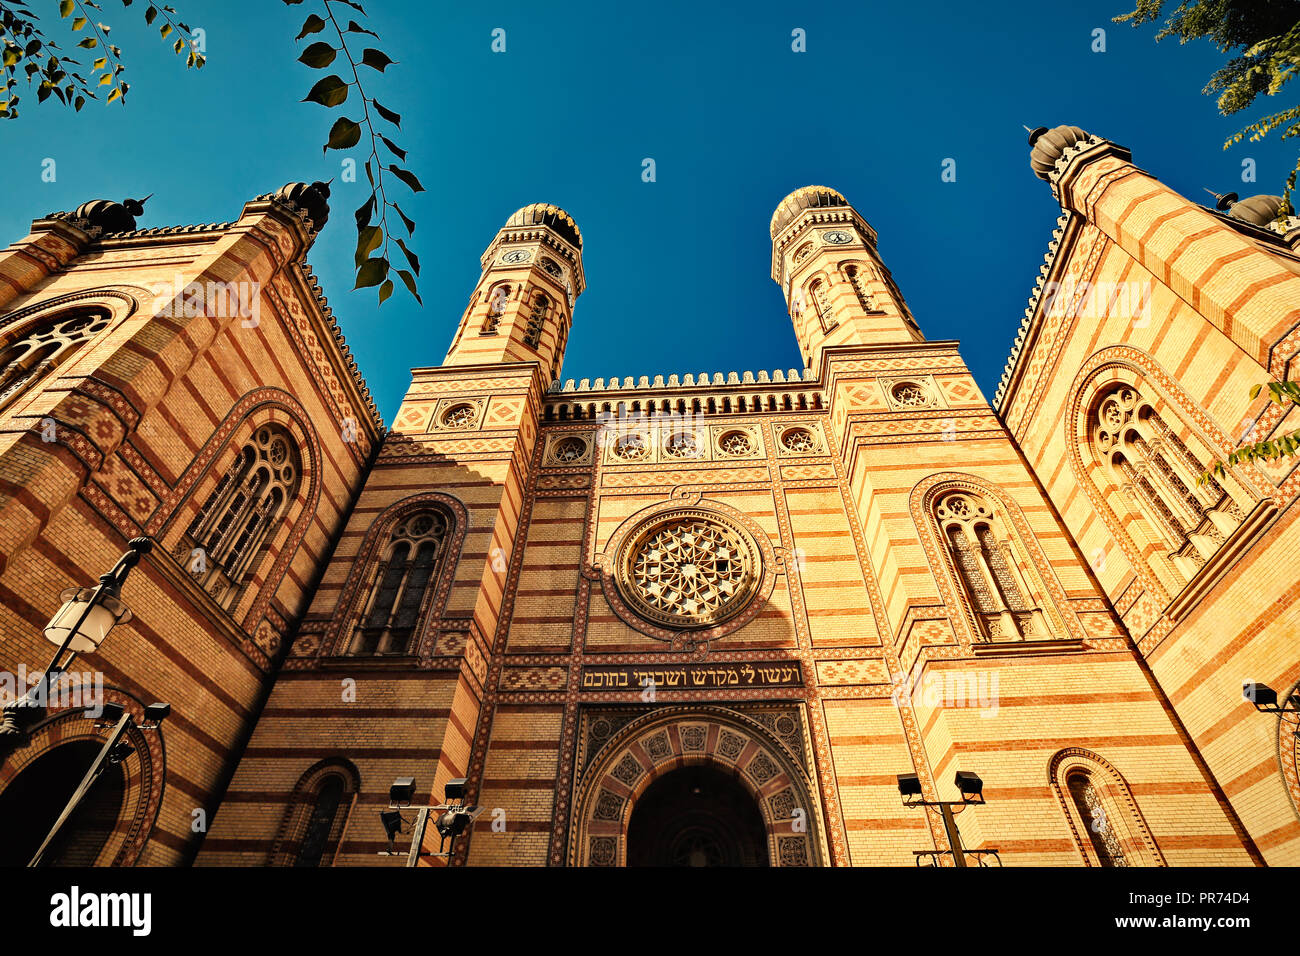 Exterior of the Great Synagogue in Dohany Street. Budapest, Hungary. - Stock Image